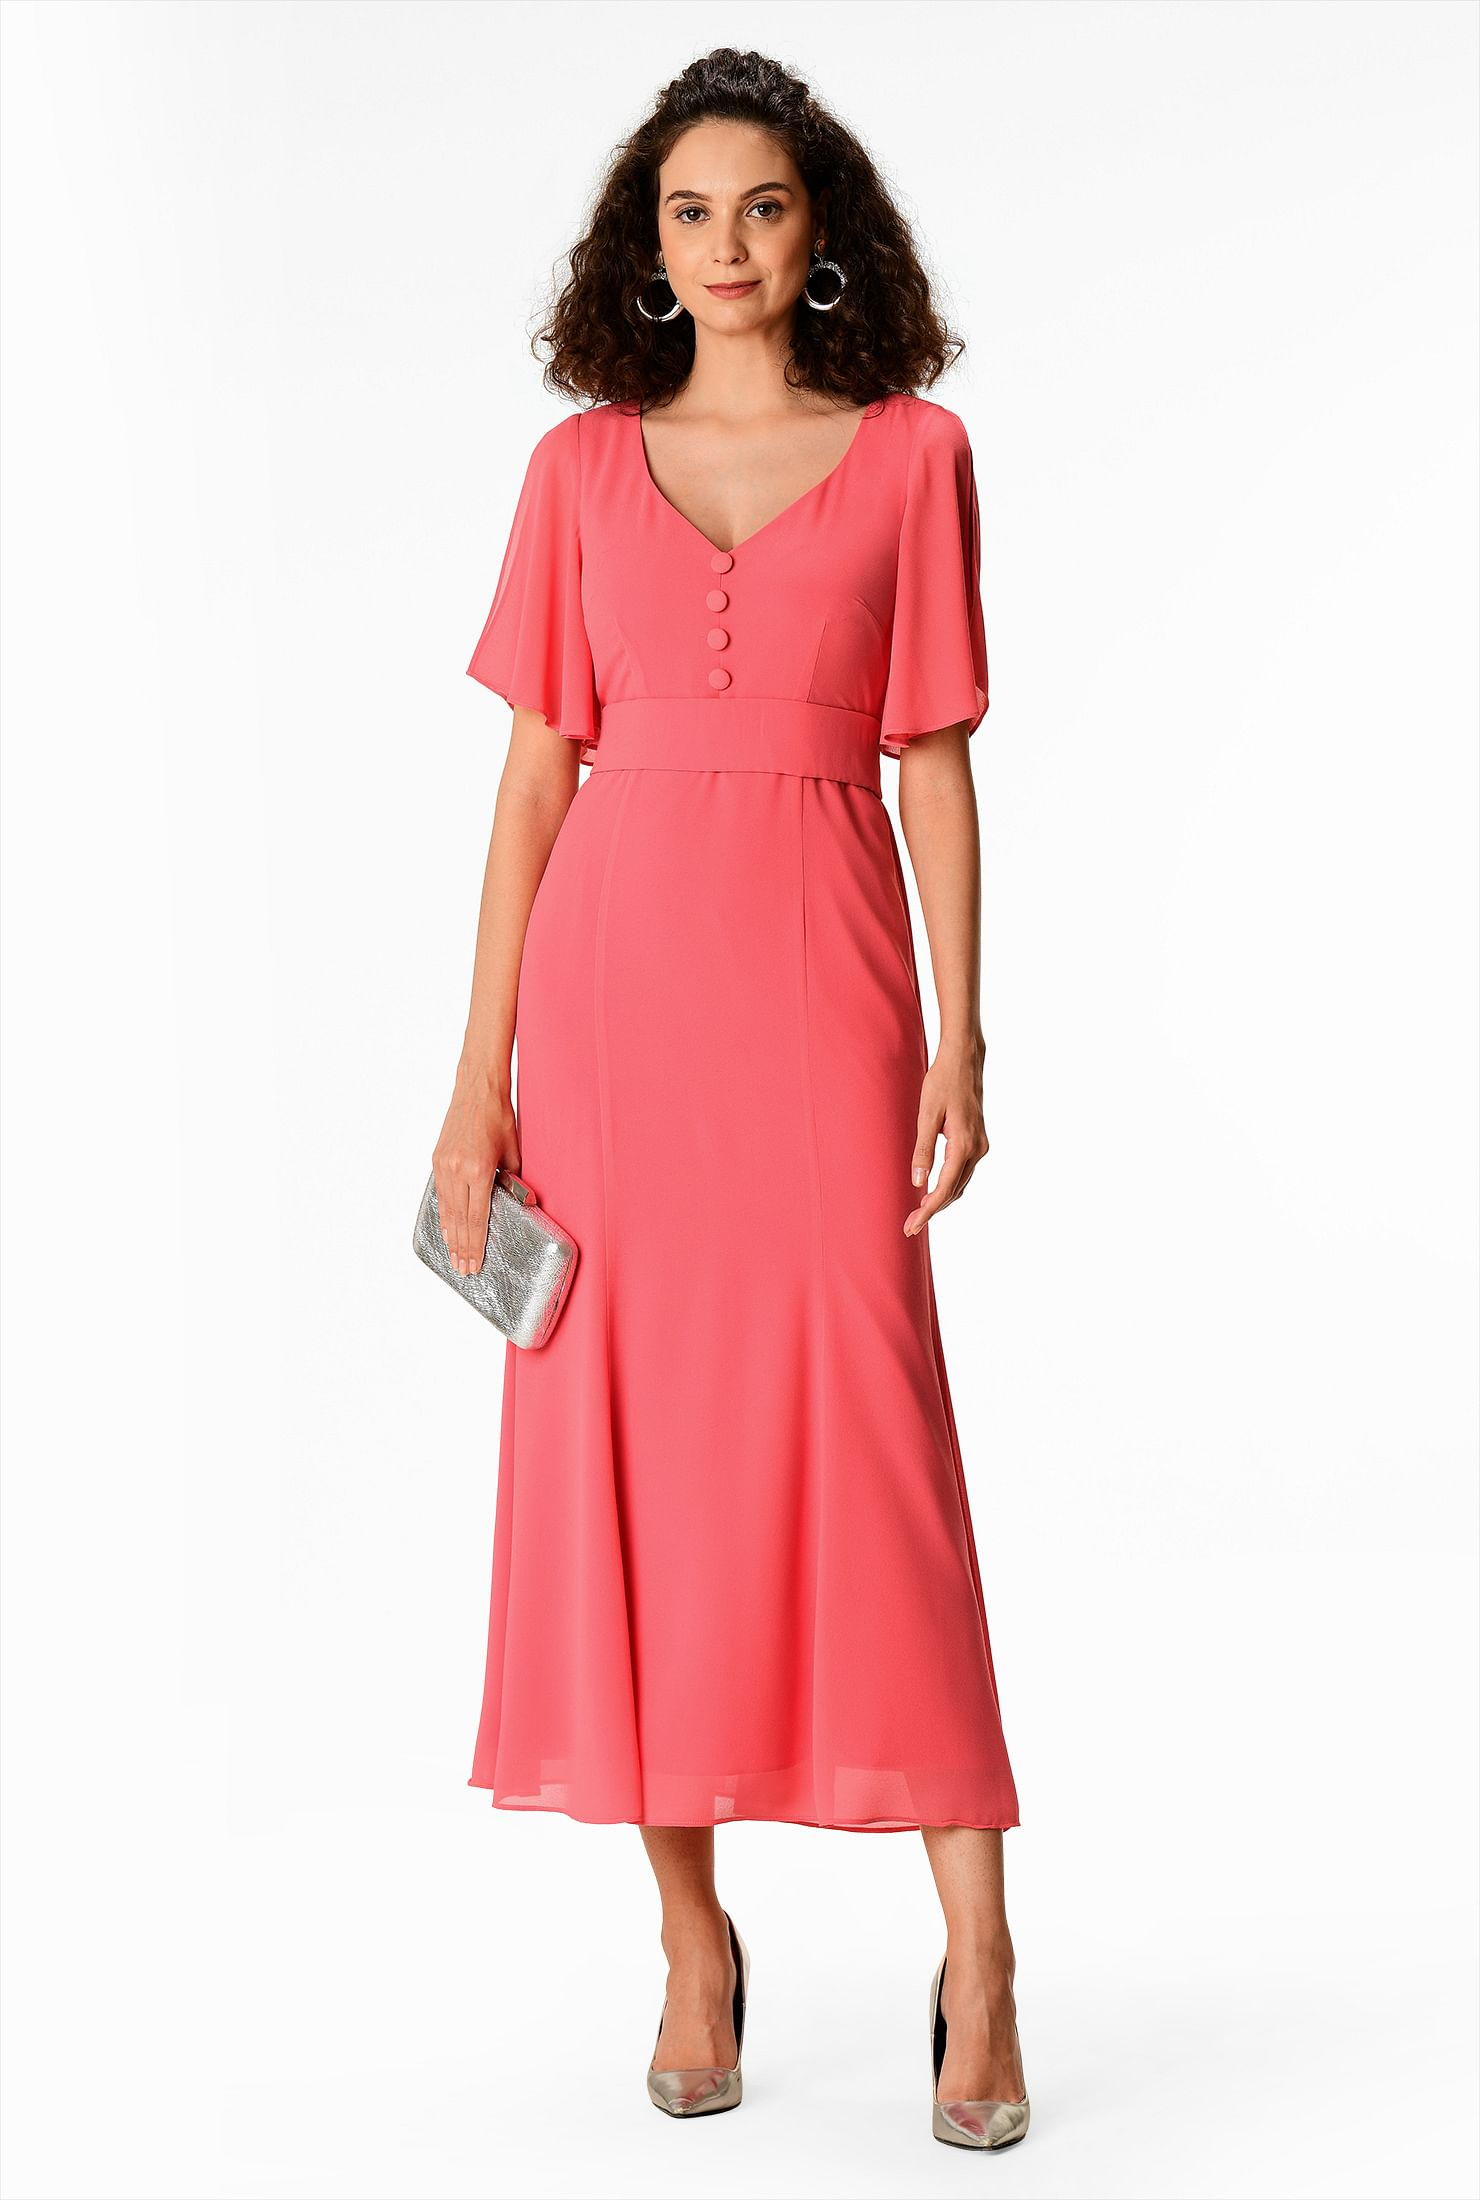 500 Vintage Style Dresses for Sale | Vintage Inspired Dresses Flared sleeve chiffon trumpet midi dress $89.95 AT vintagedancer.com